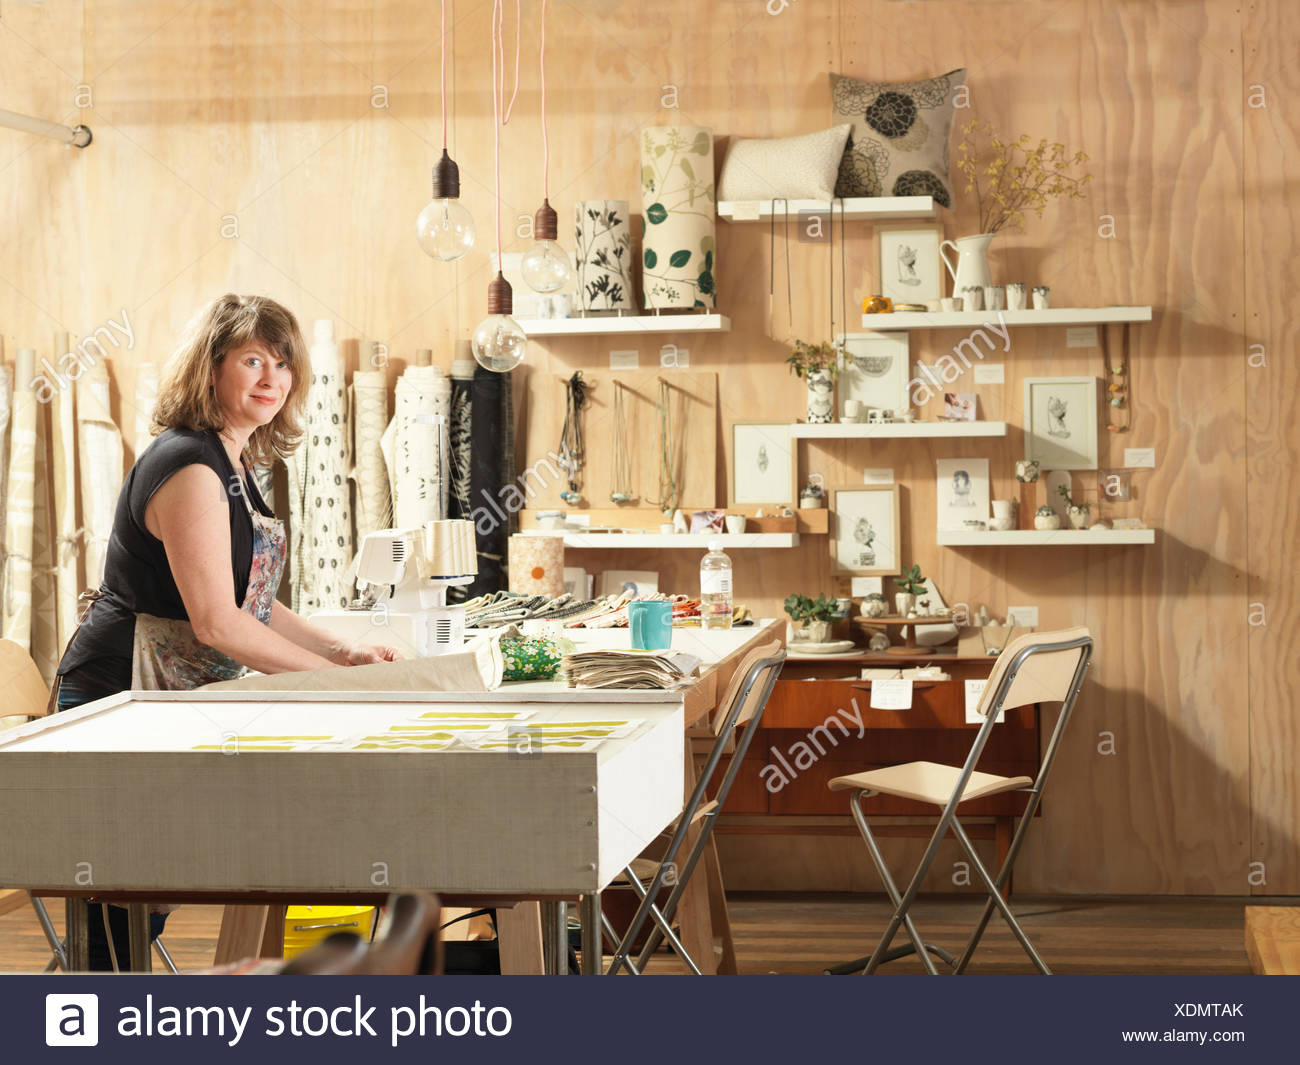 Woman at work table in hand-printing textile workshop - Stock Image